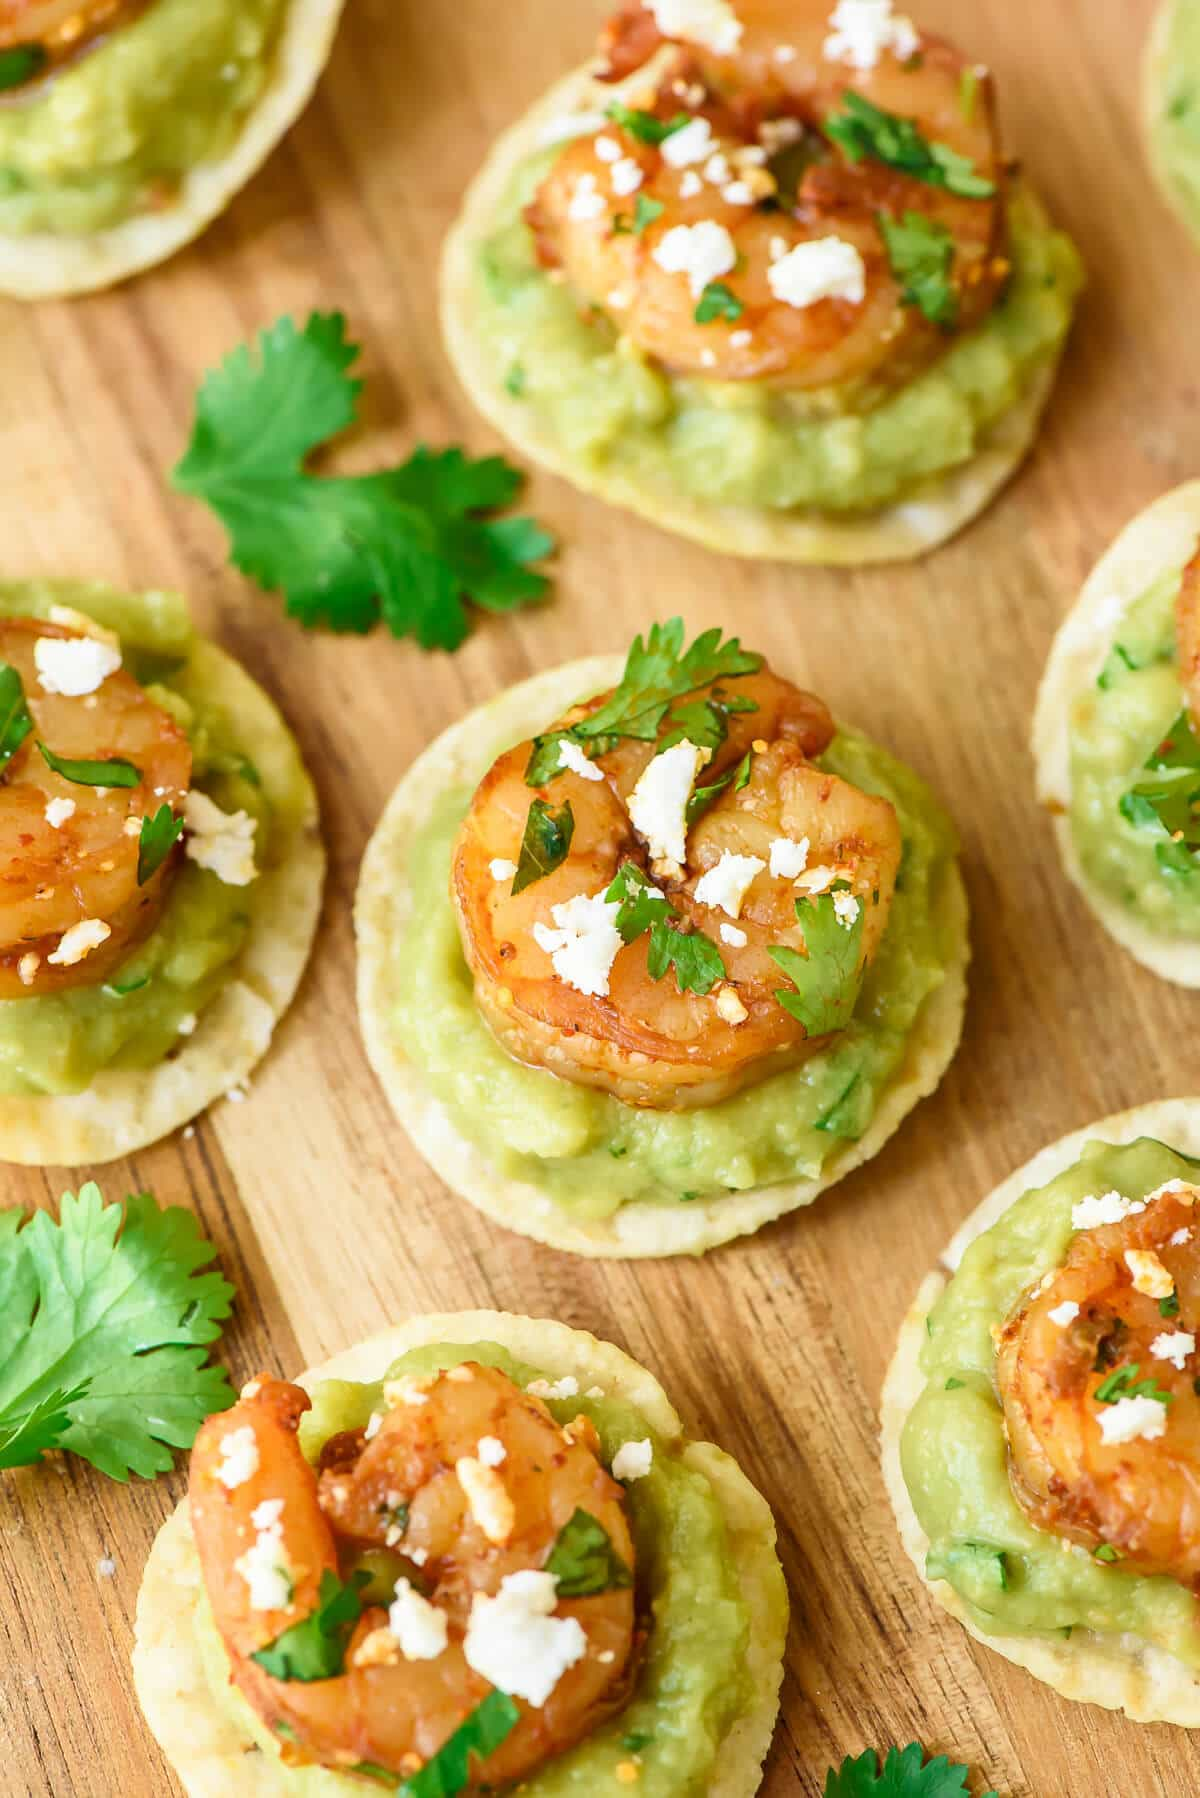 Spicy Shrimp Guacamole Bites - quick and easy, super addictive, and the perfect finger food appetizer for any gathering!